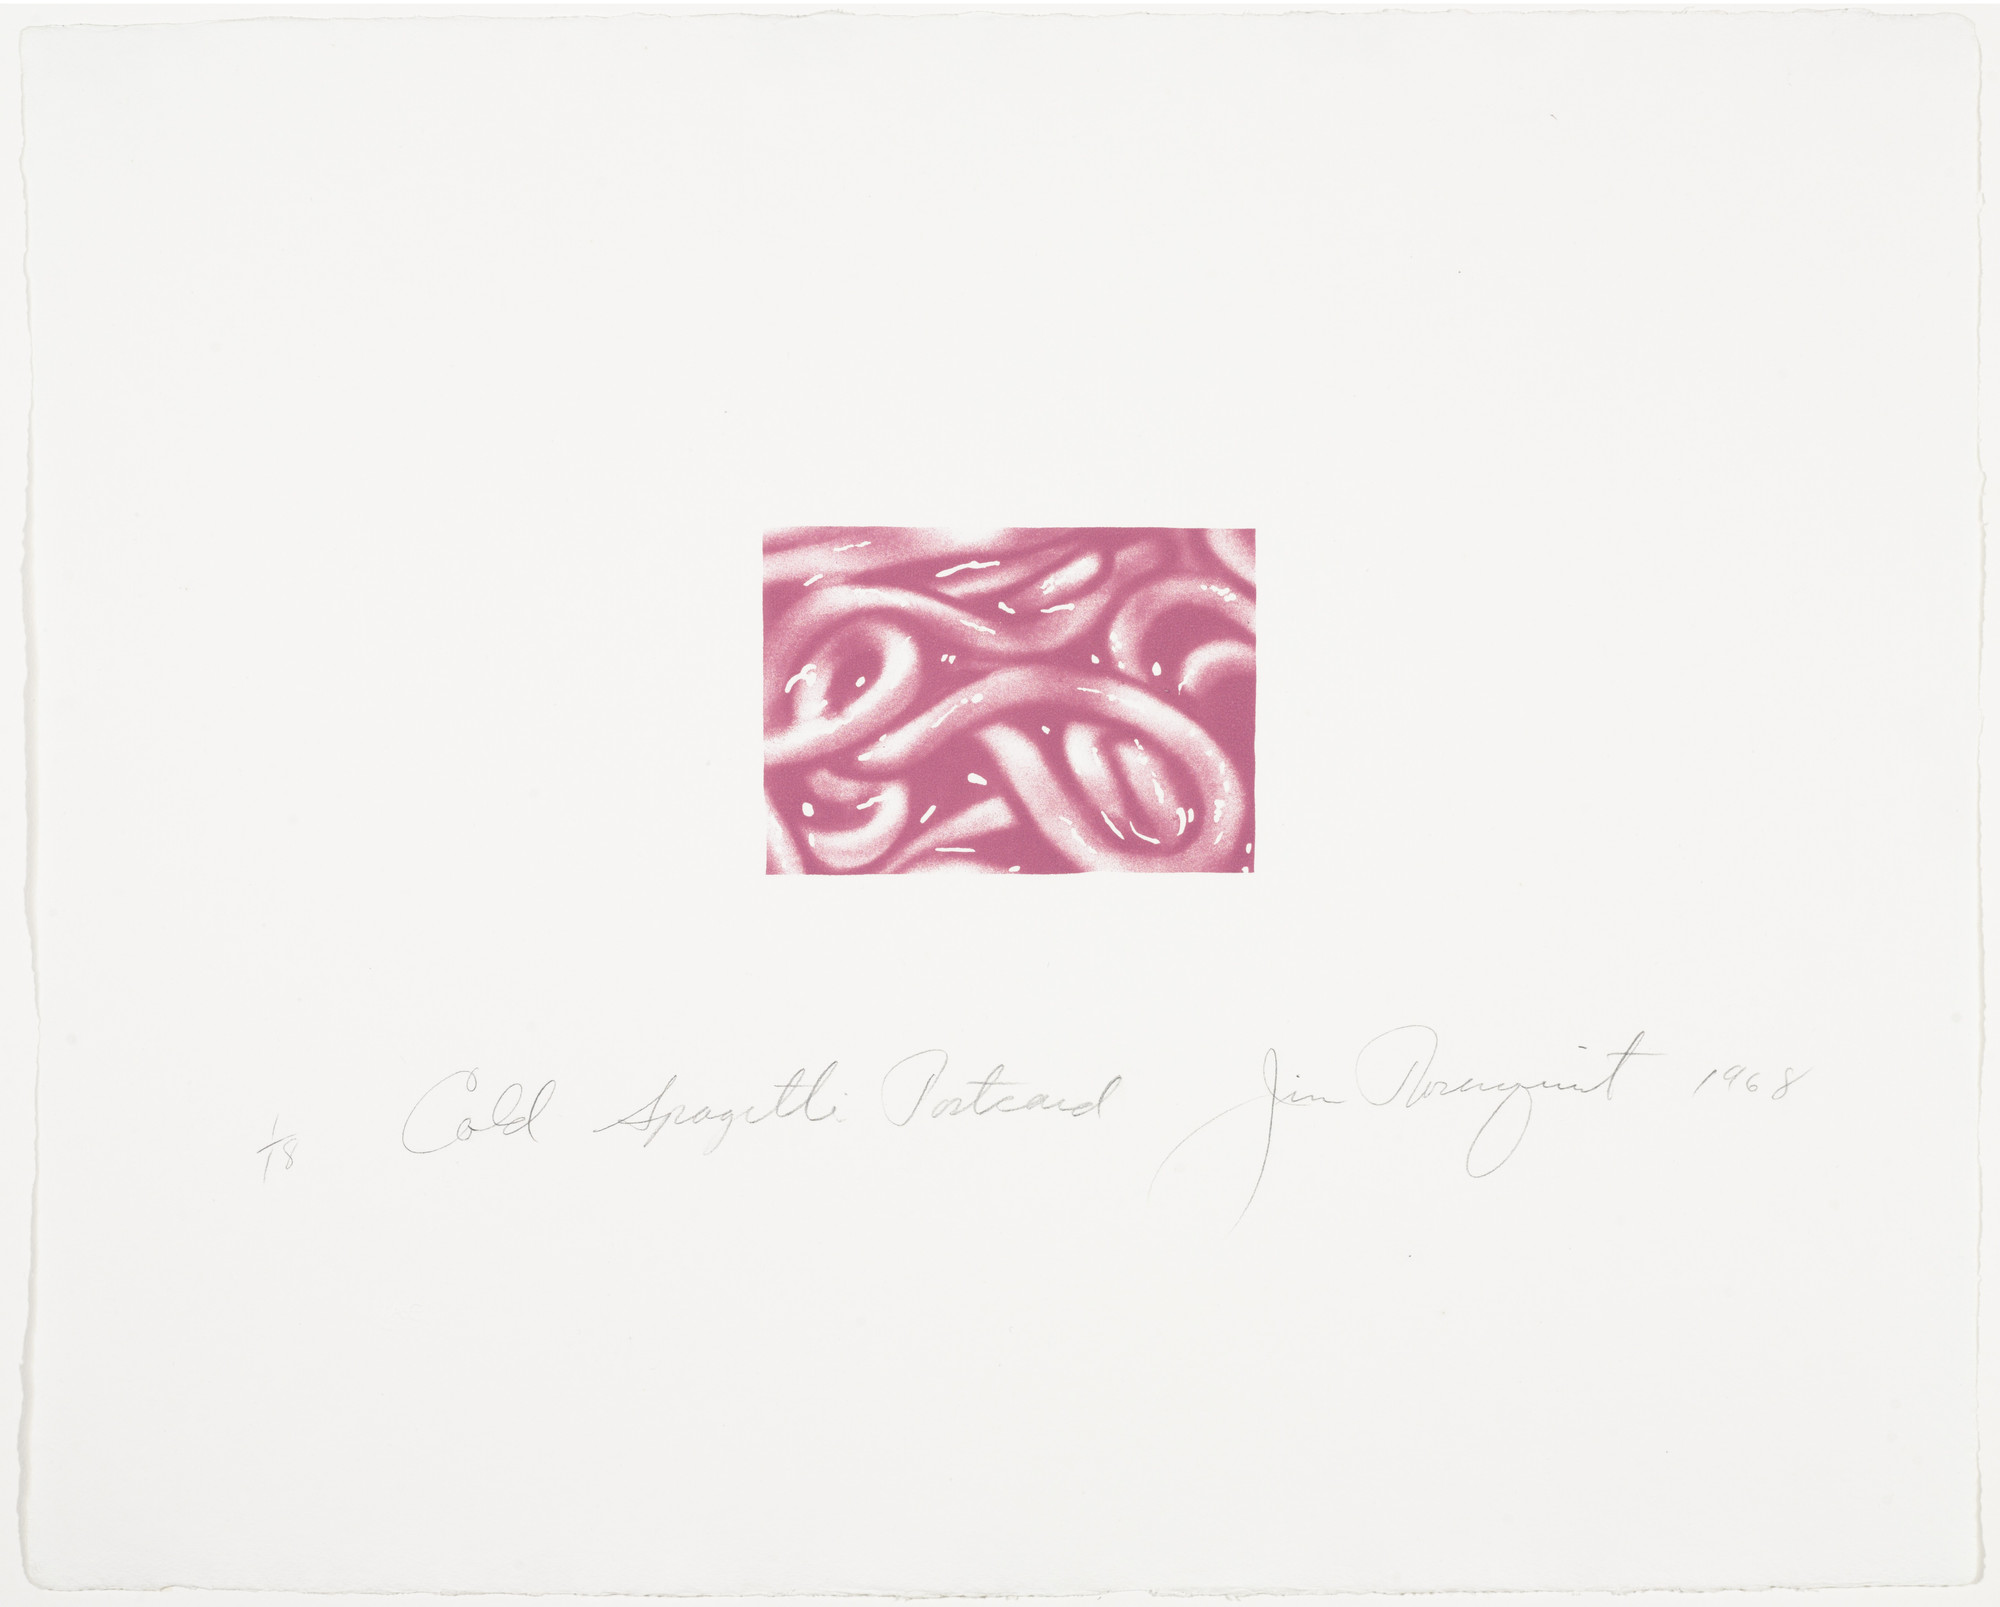 James Rosenquist. Cold Spaghetti Postcard. 1968